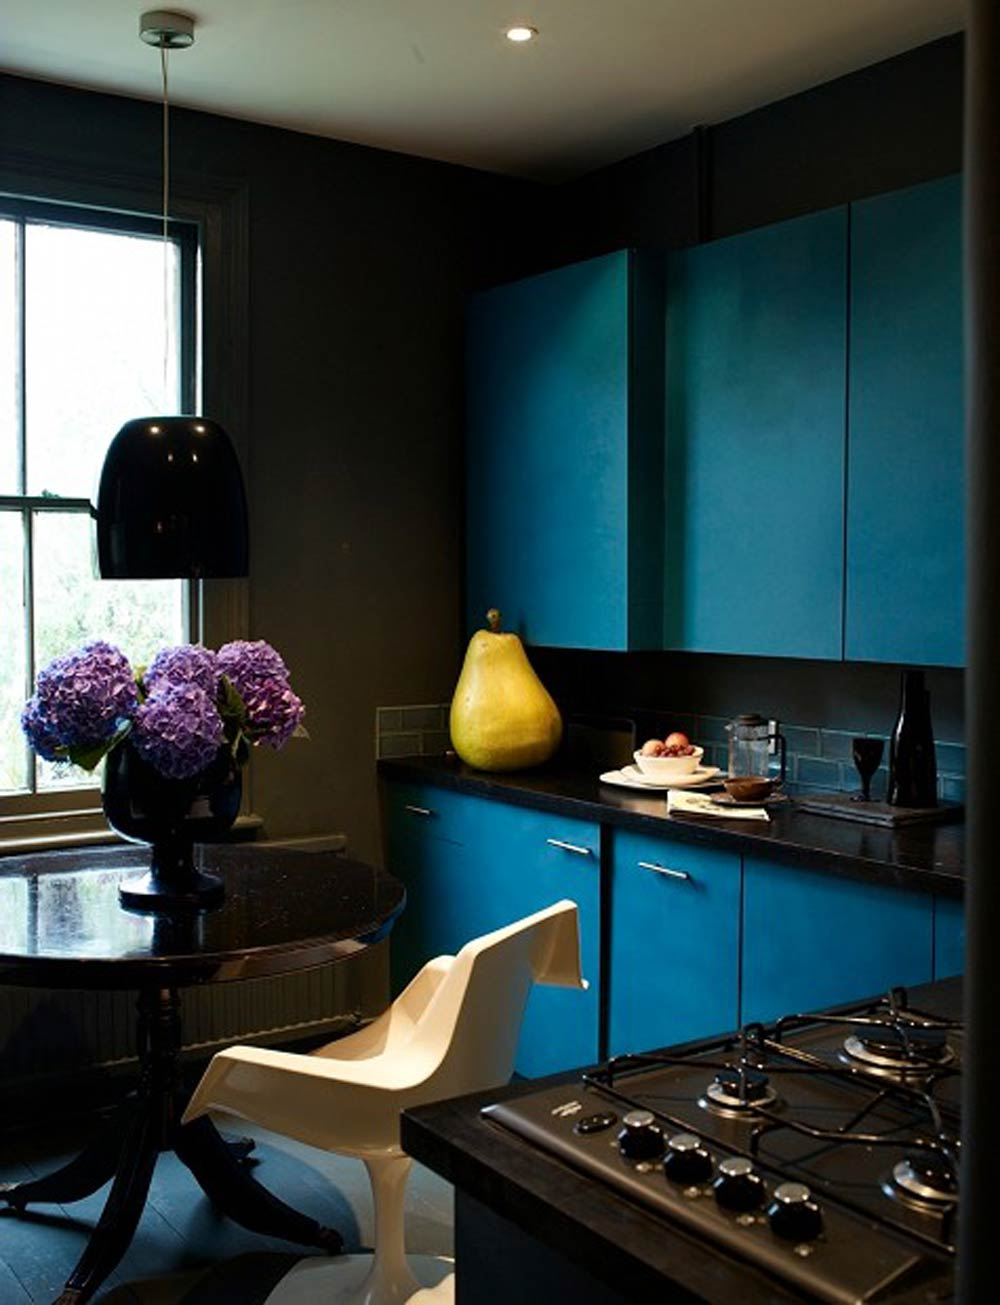 10 Deep Teal Rooms to Die For, on Design*Sponge